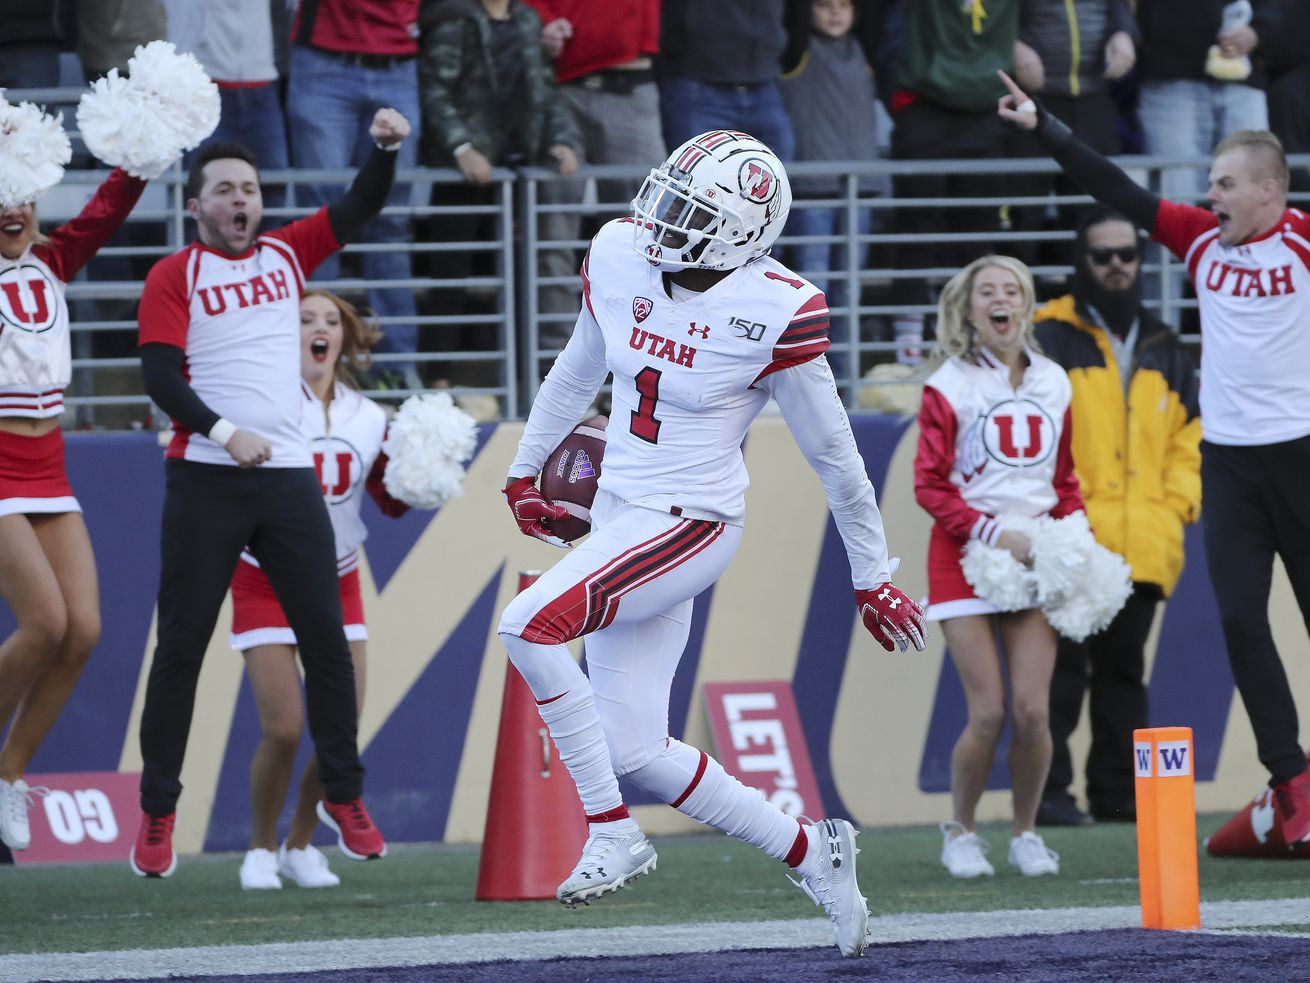 Utah Utes defensive back Jaylon Johnson (1) scores on the pick-six against the Washington Huskies in Seattle on Saturday, Nov. 2, 2019. Utah won 33-28.